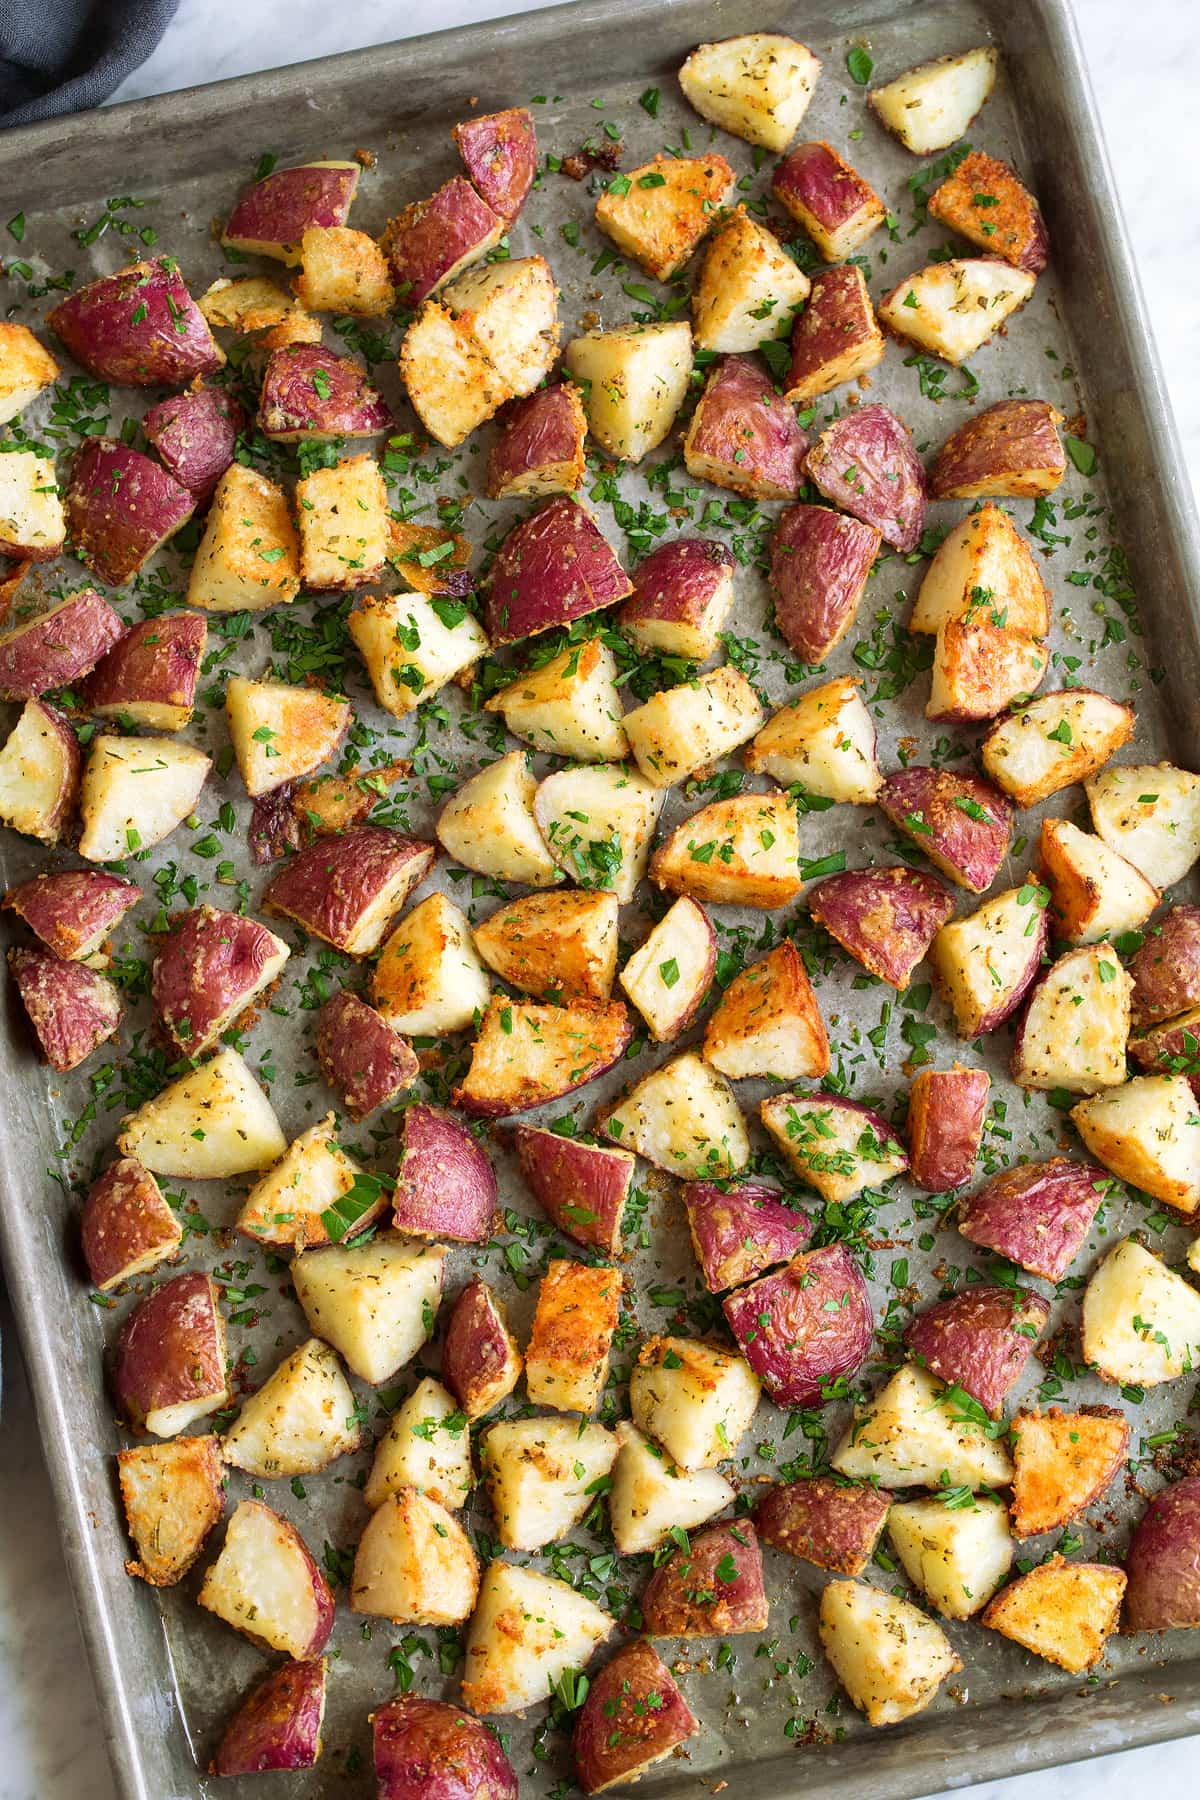 Overhead image of roasted red potatoes spread across baking sheet.